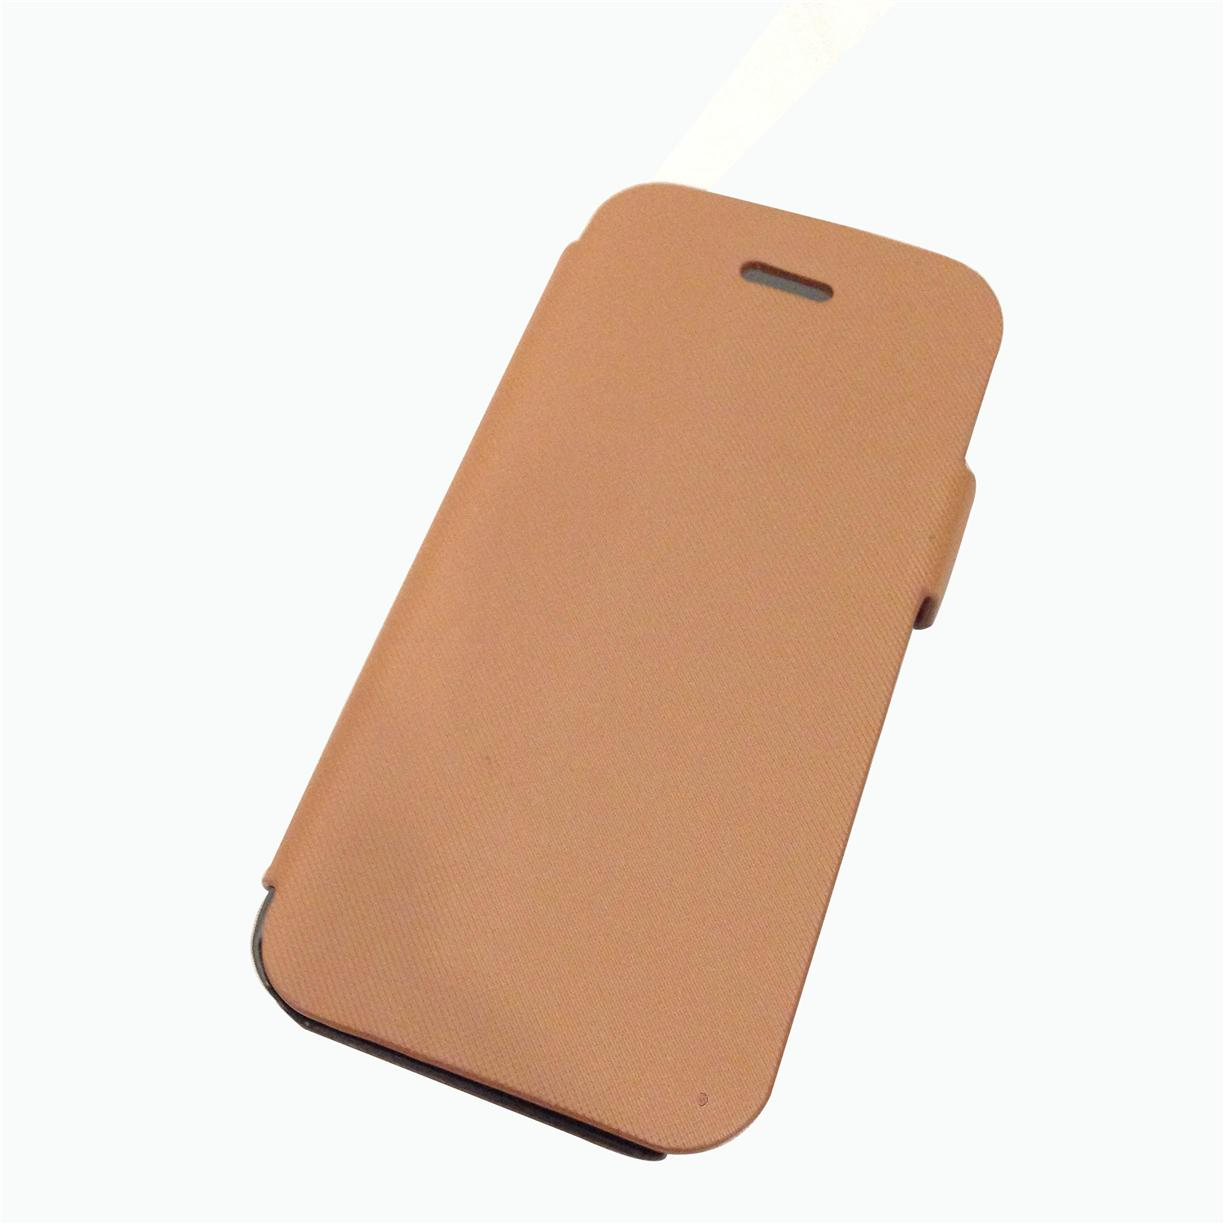 iPhone 5 / iPhone 5s Flip with stand cover - Brown